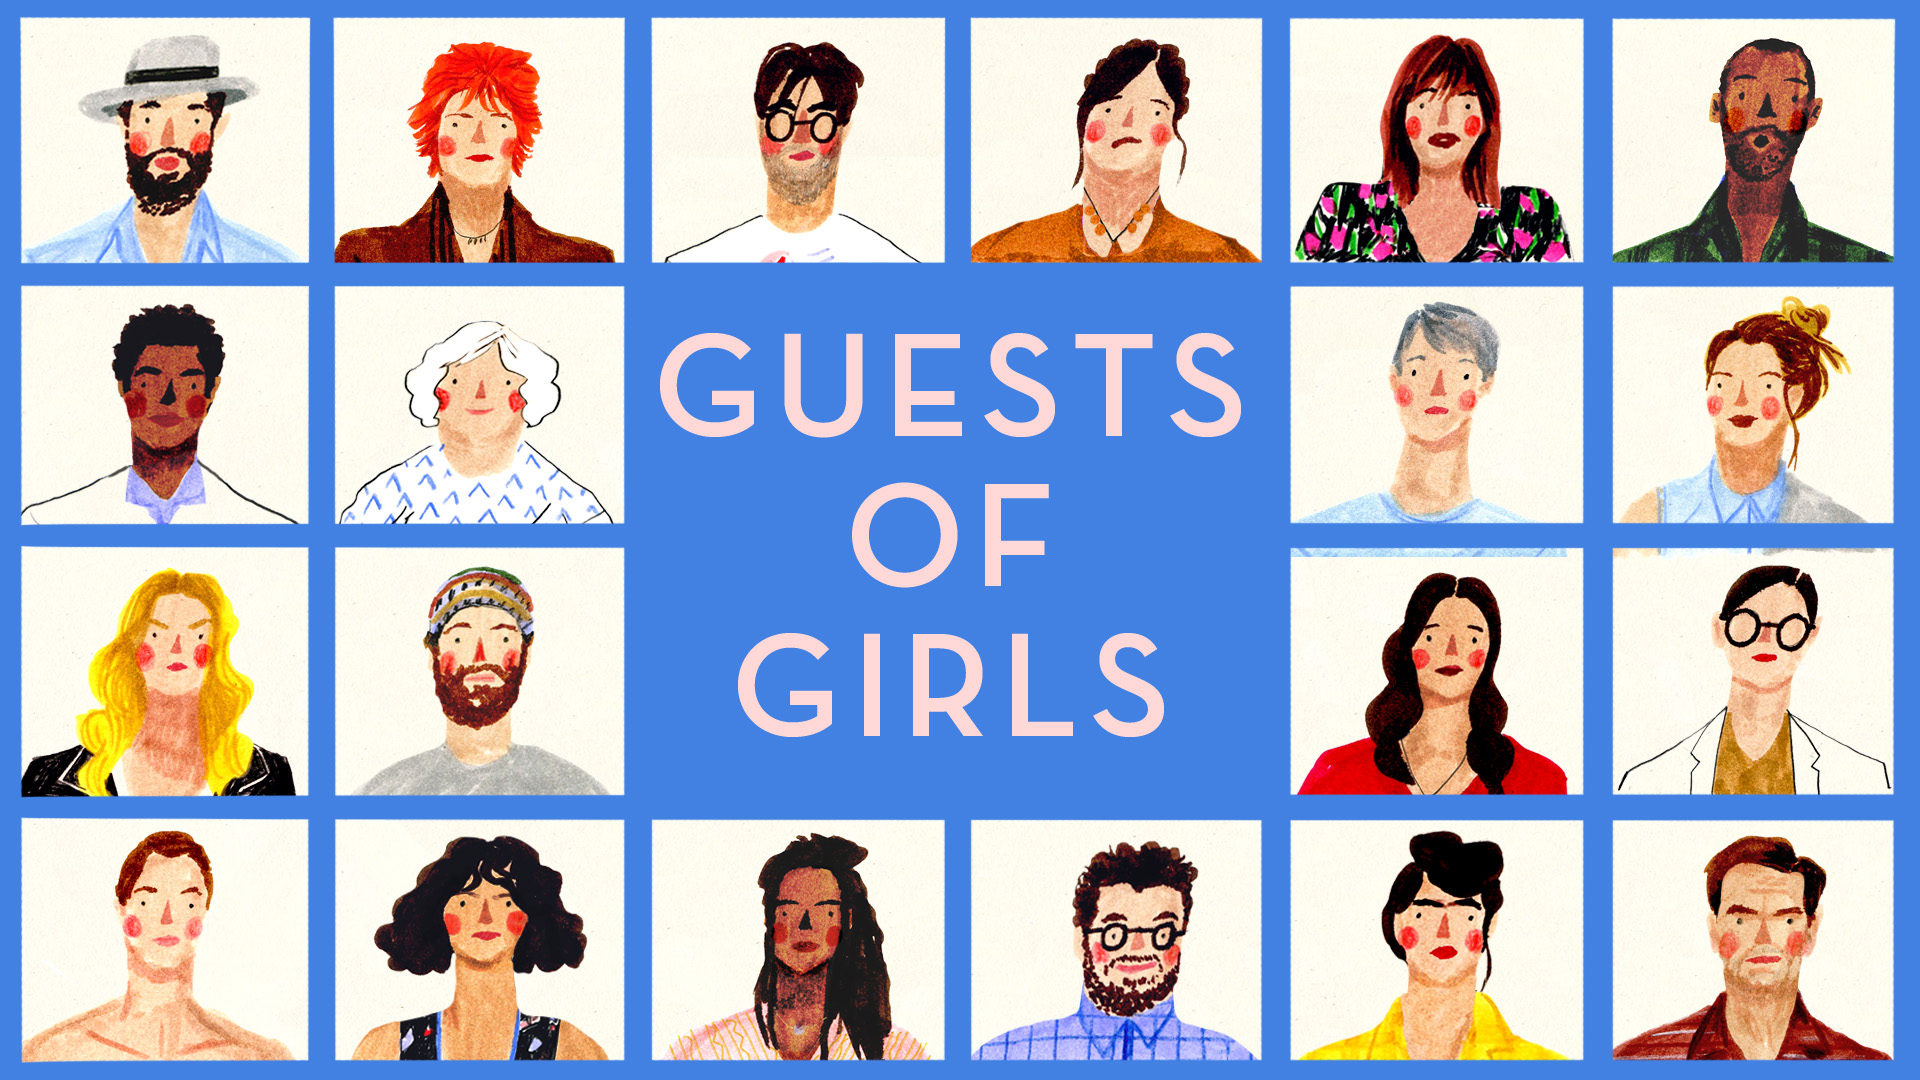 GUESTS OF GIRLS